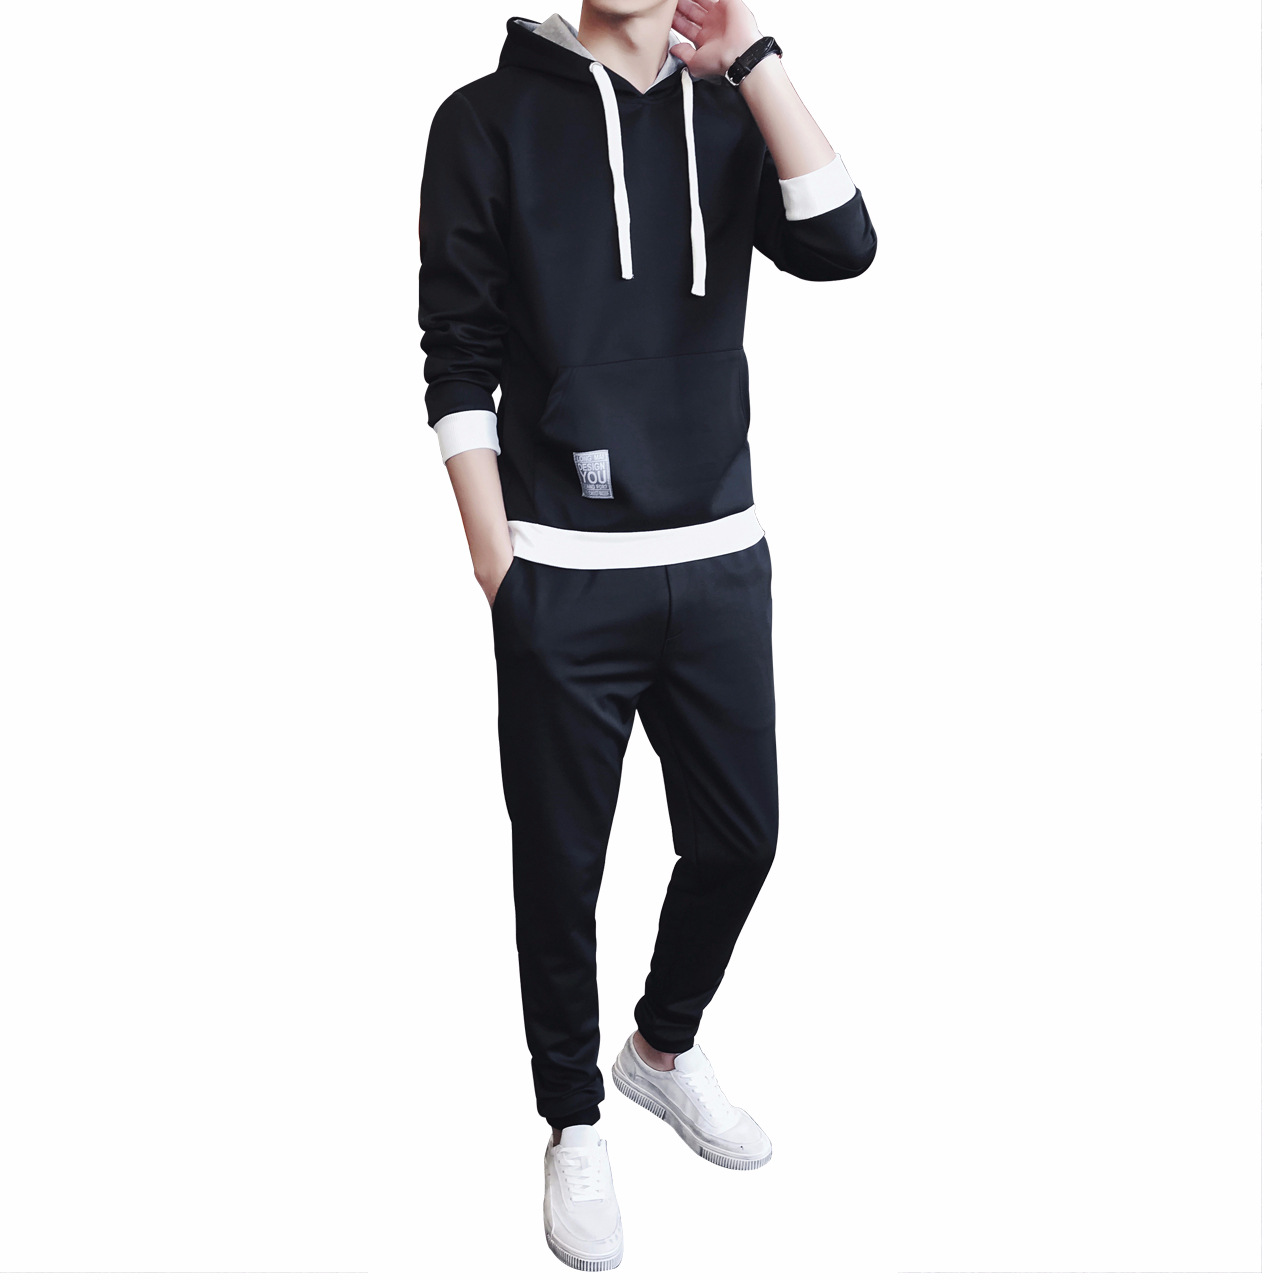 hoodies Sweats Spring New Mens Casual Suit Student Suit Mens Fashion Long-sleeved Shirt + Pants Casual Suit hoodies